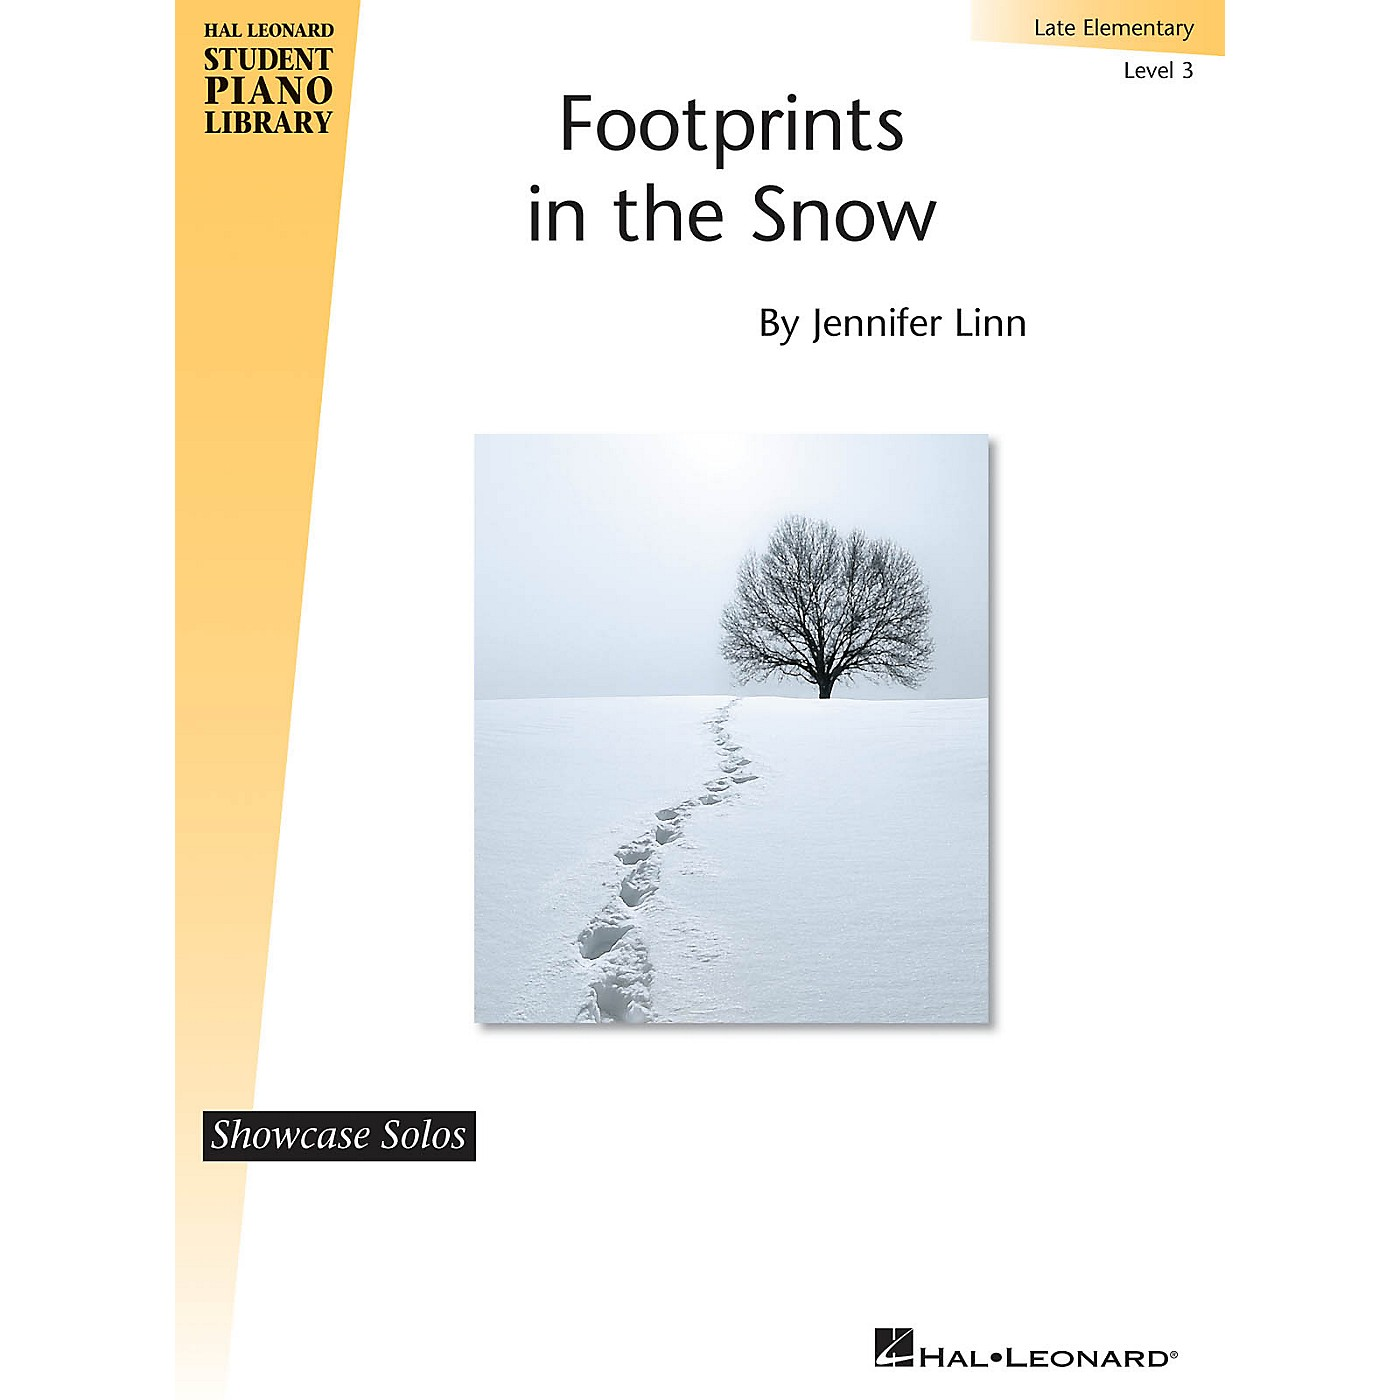 Hal Leonard Footprints in the Snow Piano Library Series by Jennifer Linn (Level Late Elem) thumbnail